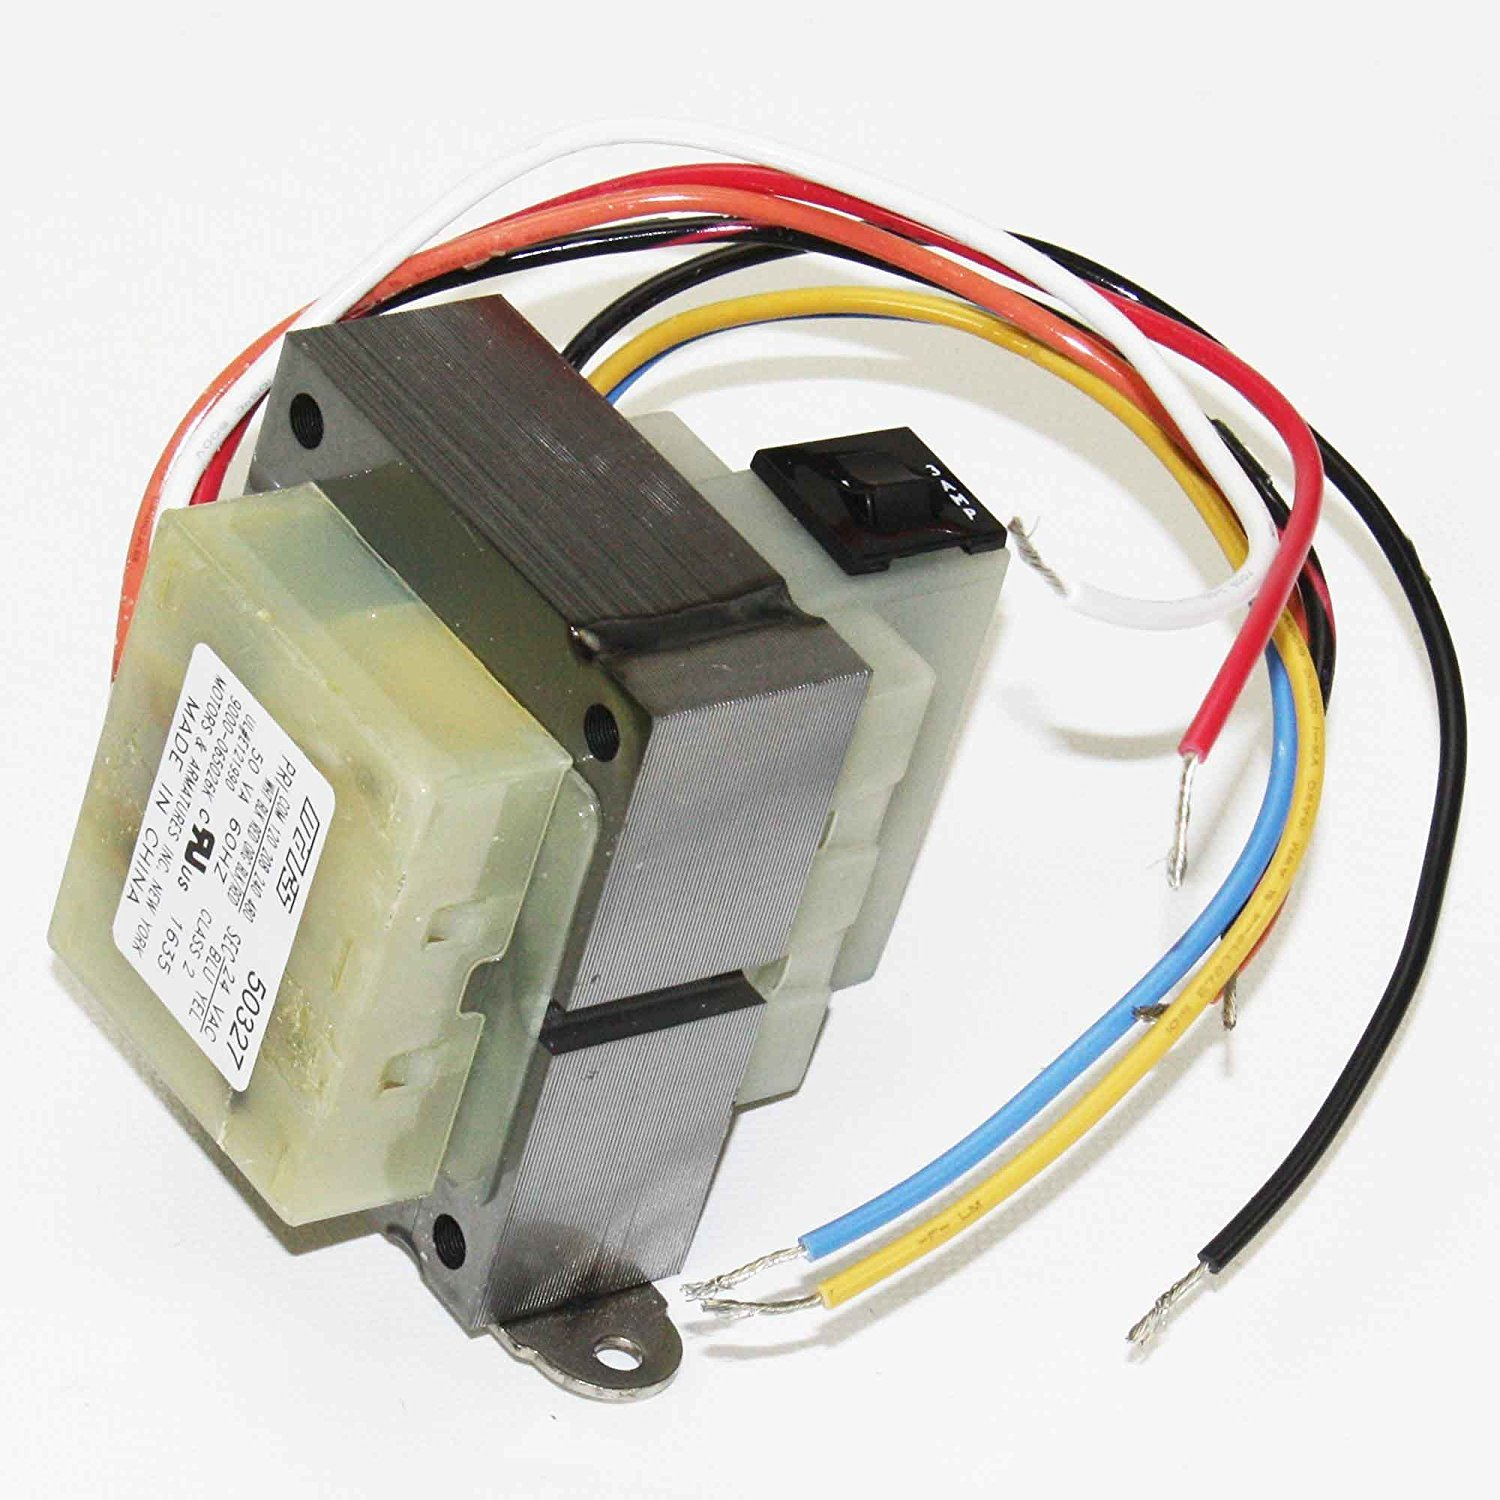 [DIAGRAM_3US]  Amazon.com: 120/208/240/480 Volt to 24 Volt 50VA Foot Mount Transformer  Manual Reset: Industrial & Scientific | 208 Transformer Wiring Diagram |  | Amazon.com